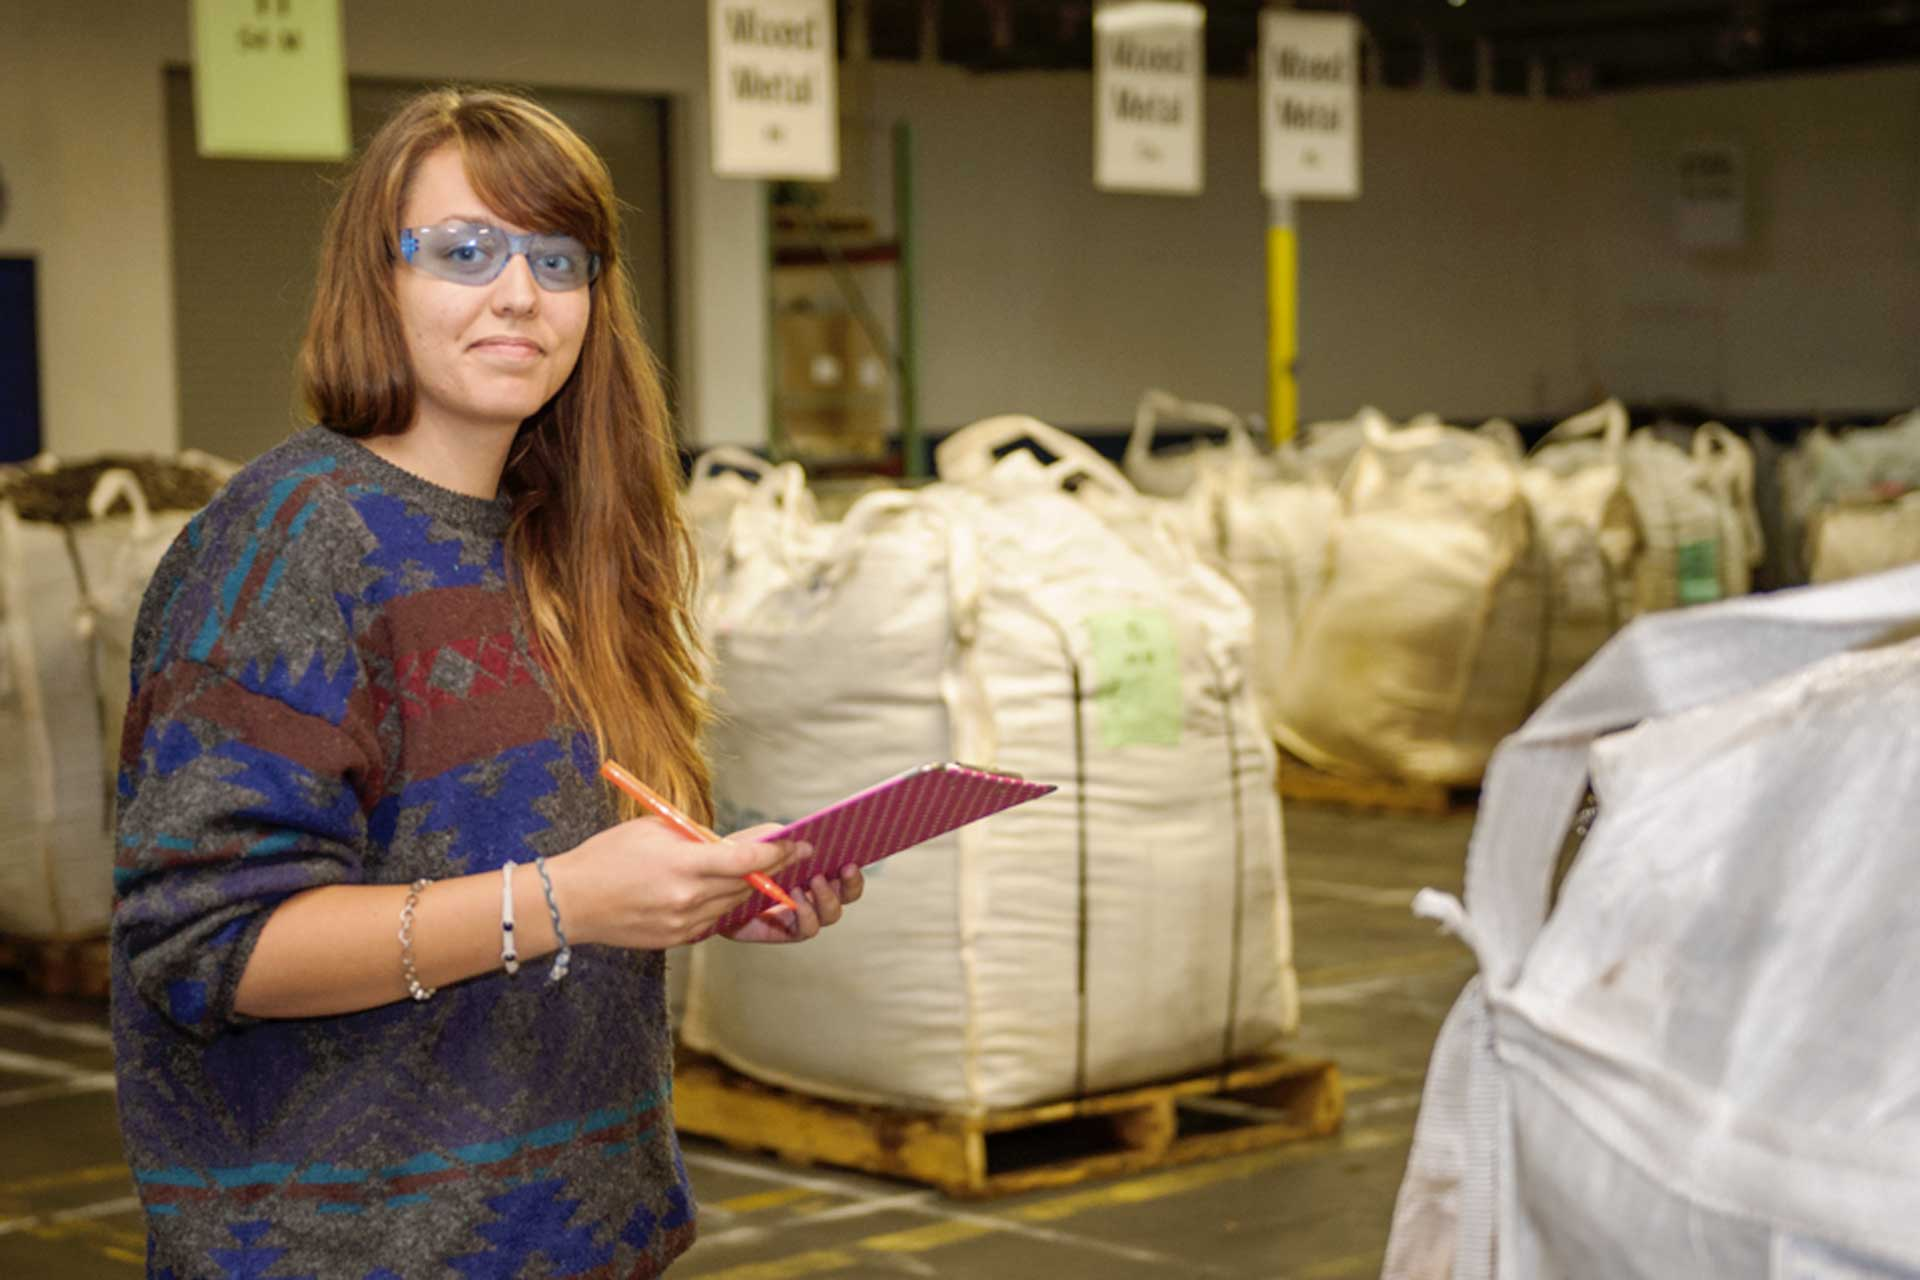 Young woman with safety glasses and a clipboard checks inventory